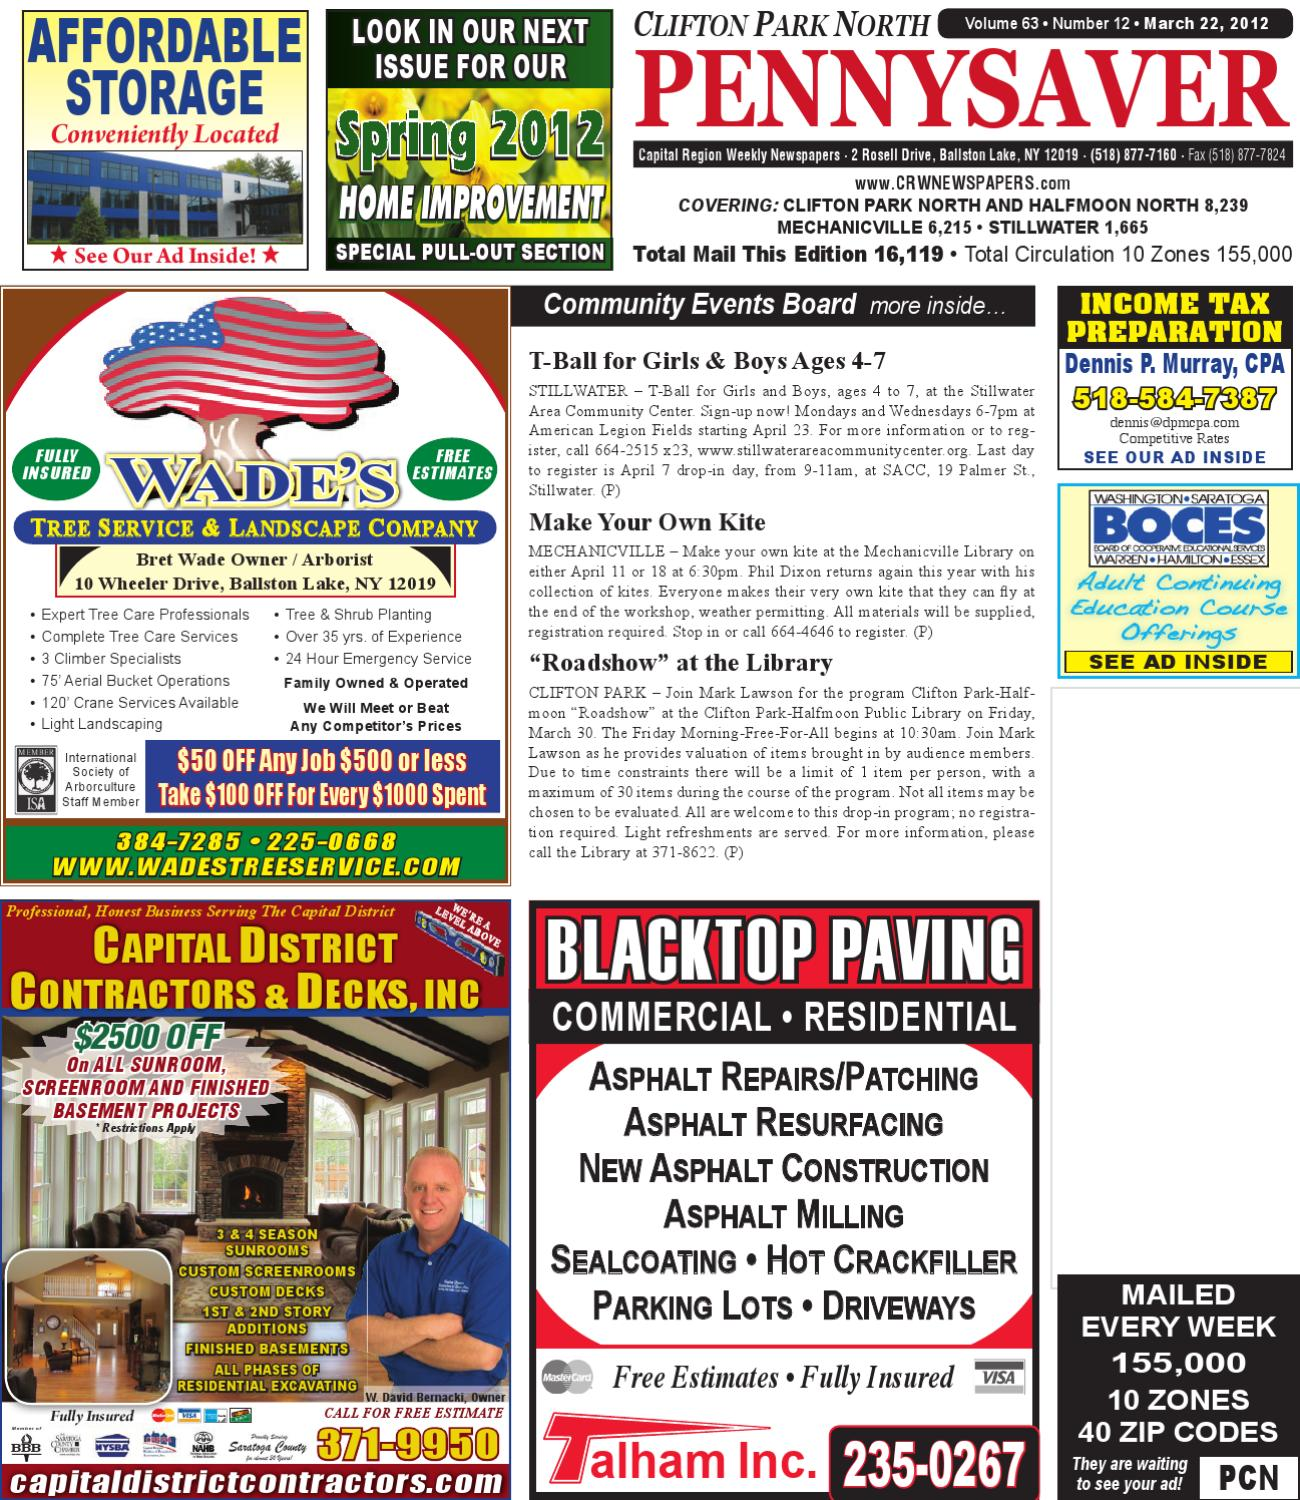 Clifton Park North Pennysaver 032212 by Capital Region Weekly Newspapers -  issuu b3ac0f2e0fb9c